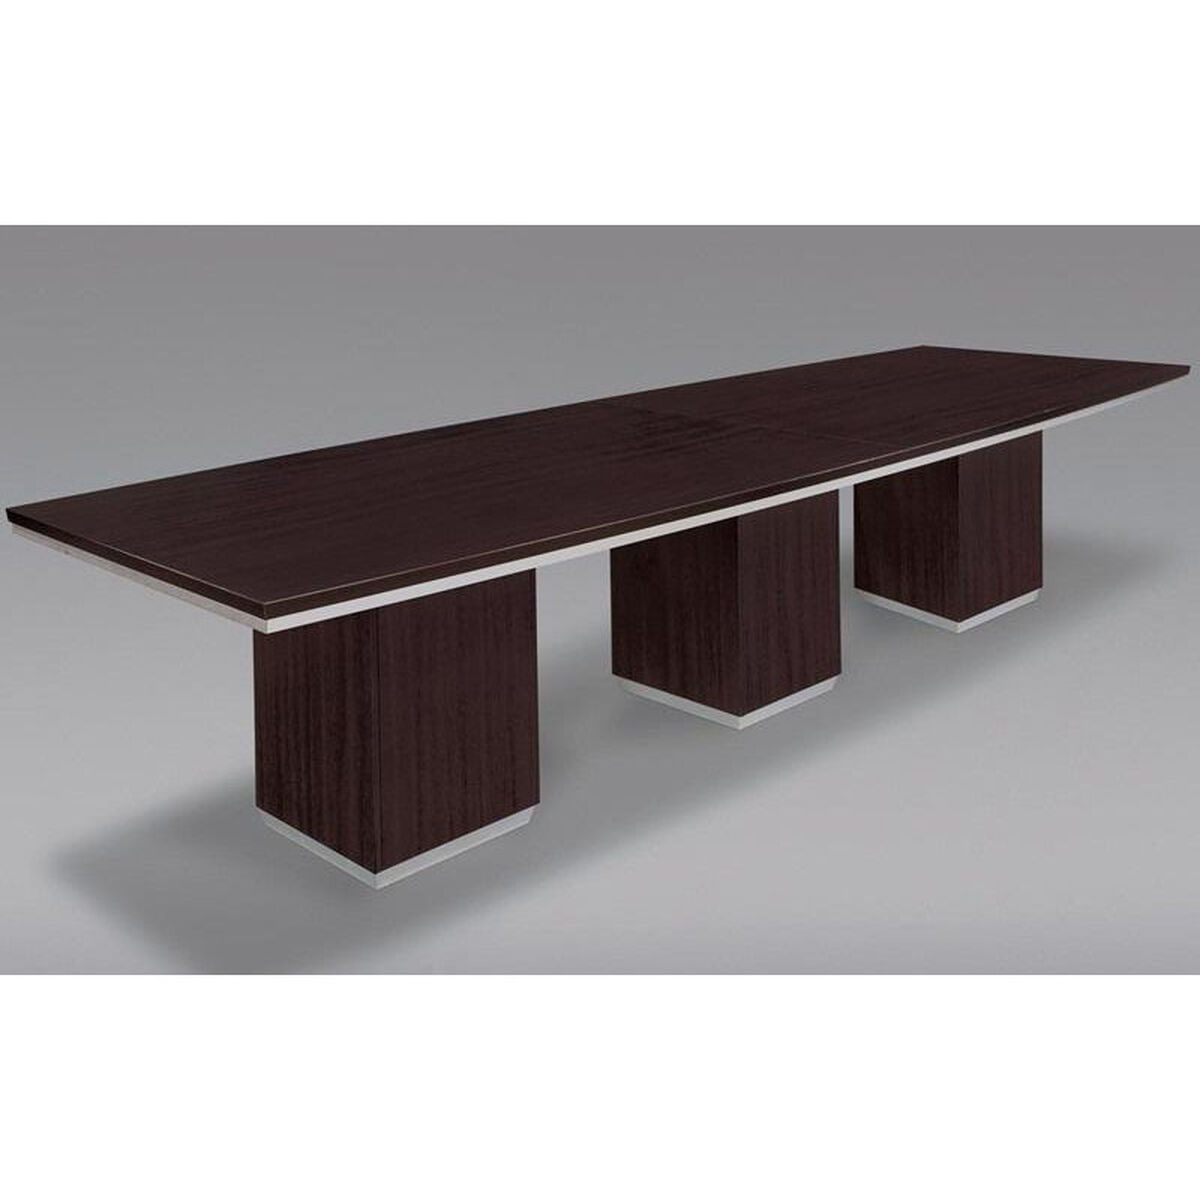 Boat Top Conference Table SchoolFurnitureLesscom - 144 conference table